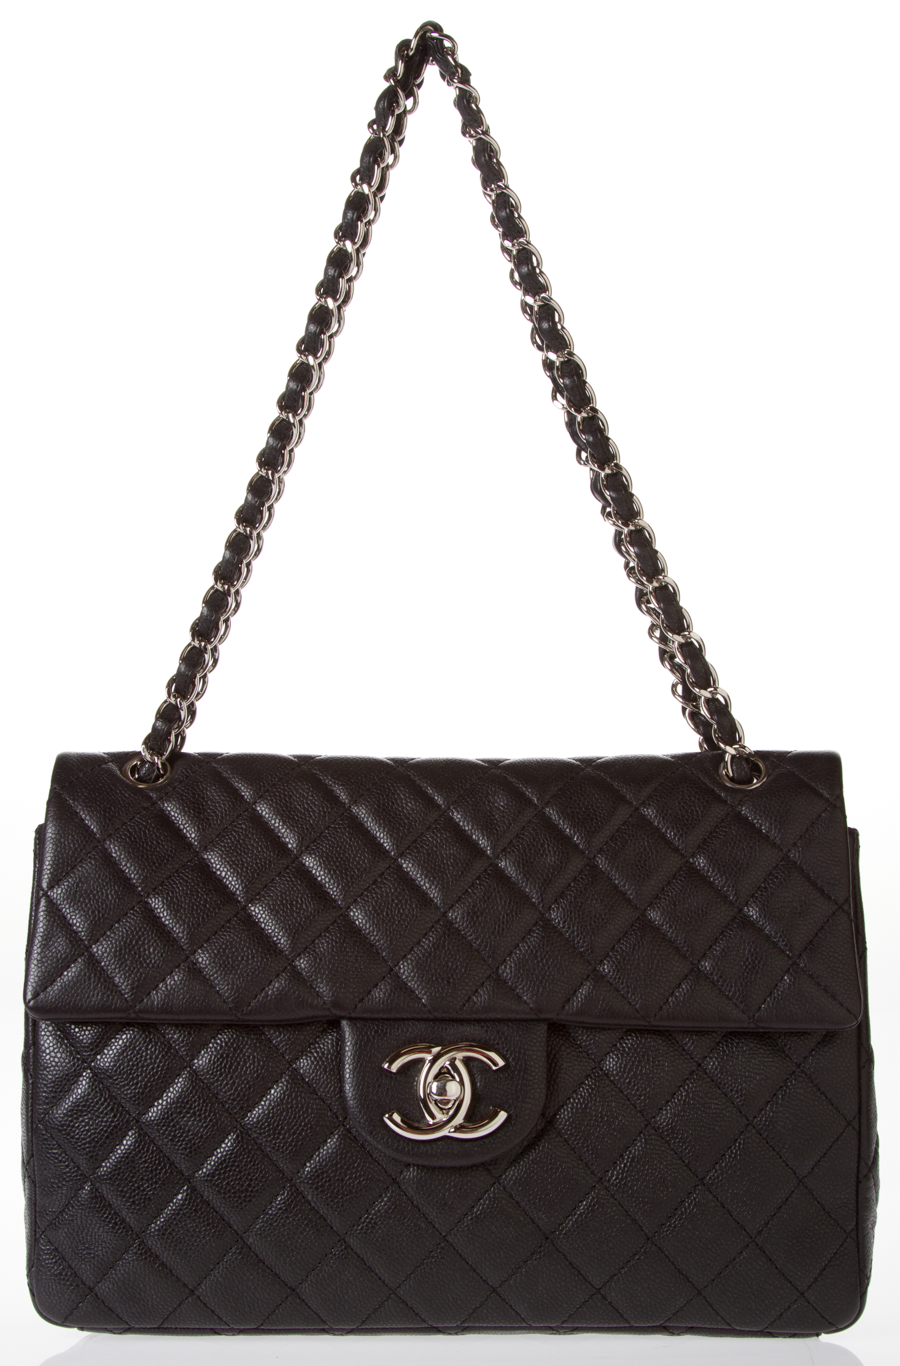 34ec36a86620 Chanel Shoulder Bag  FollowShopHers